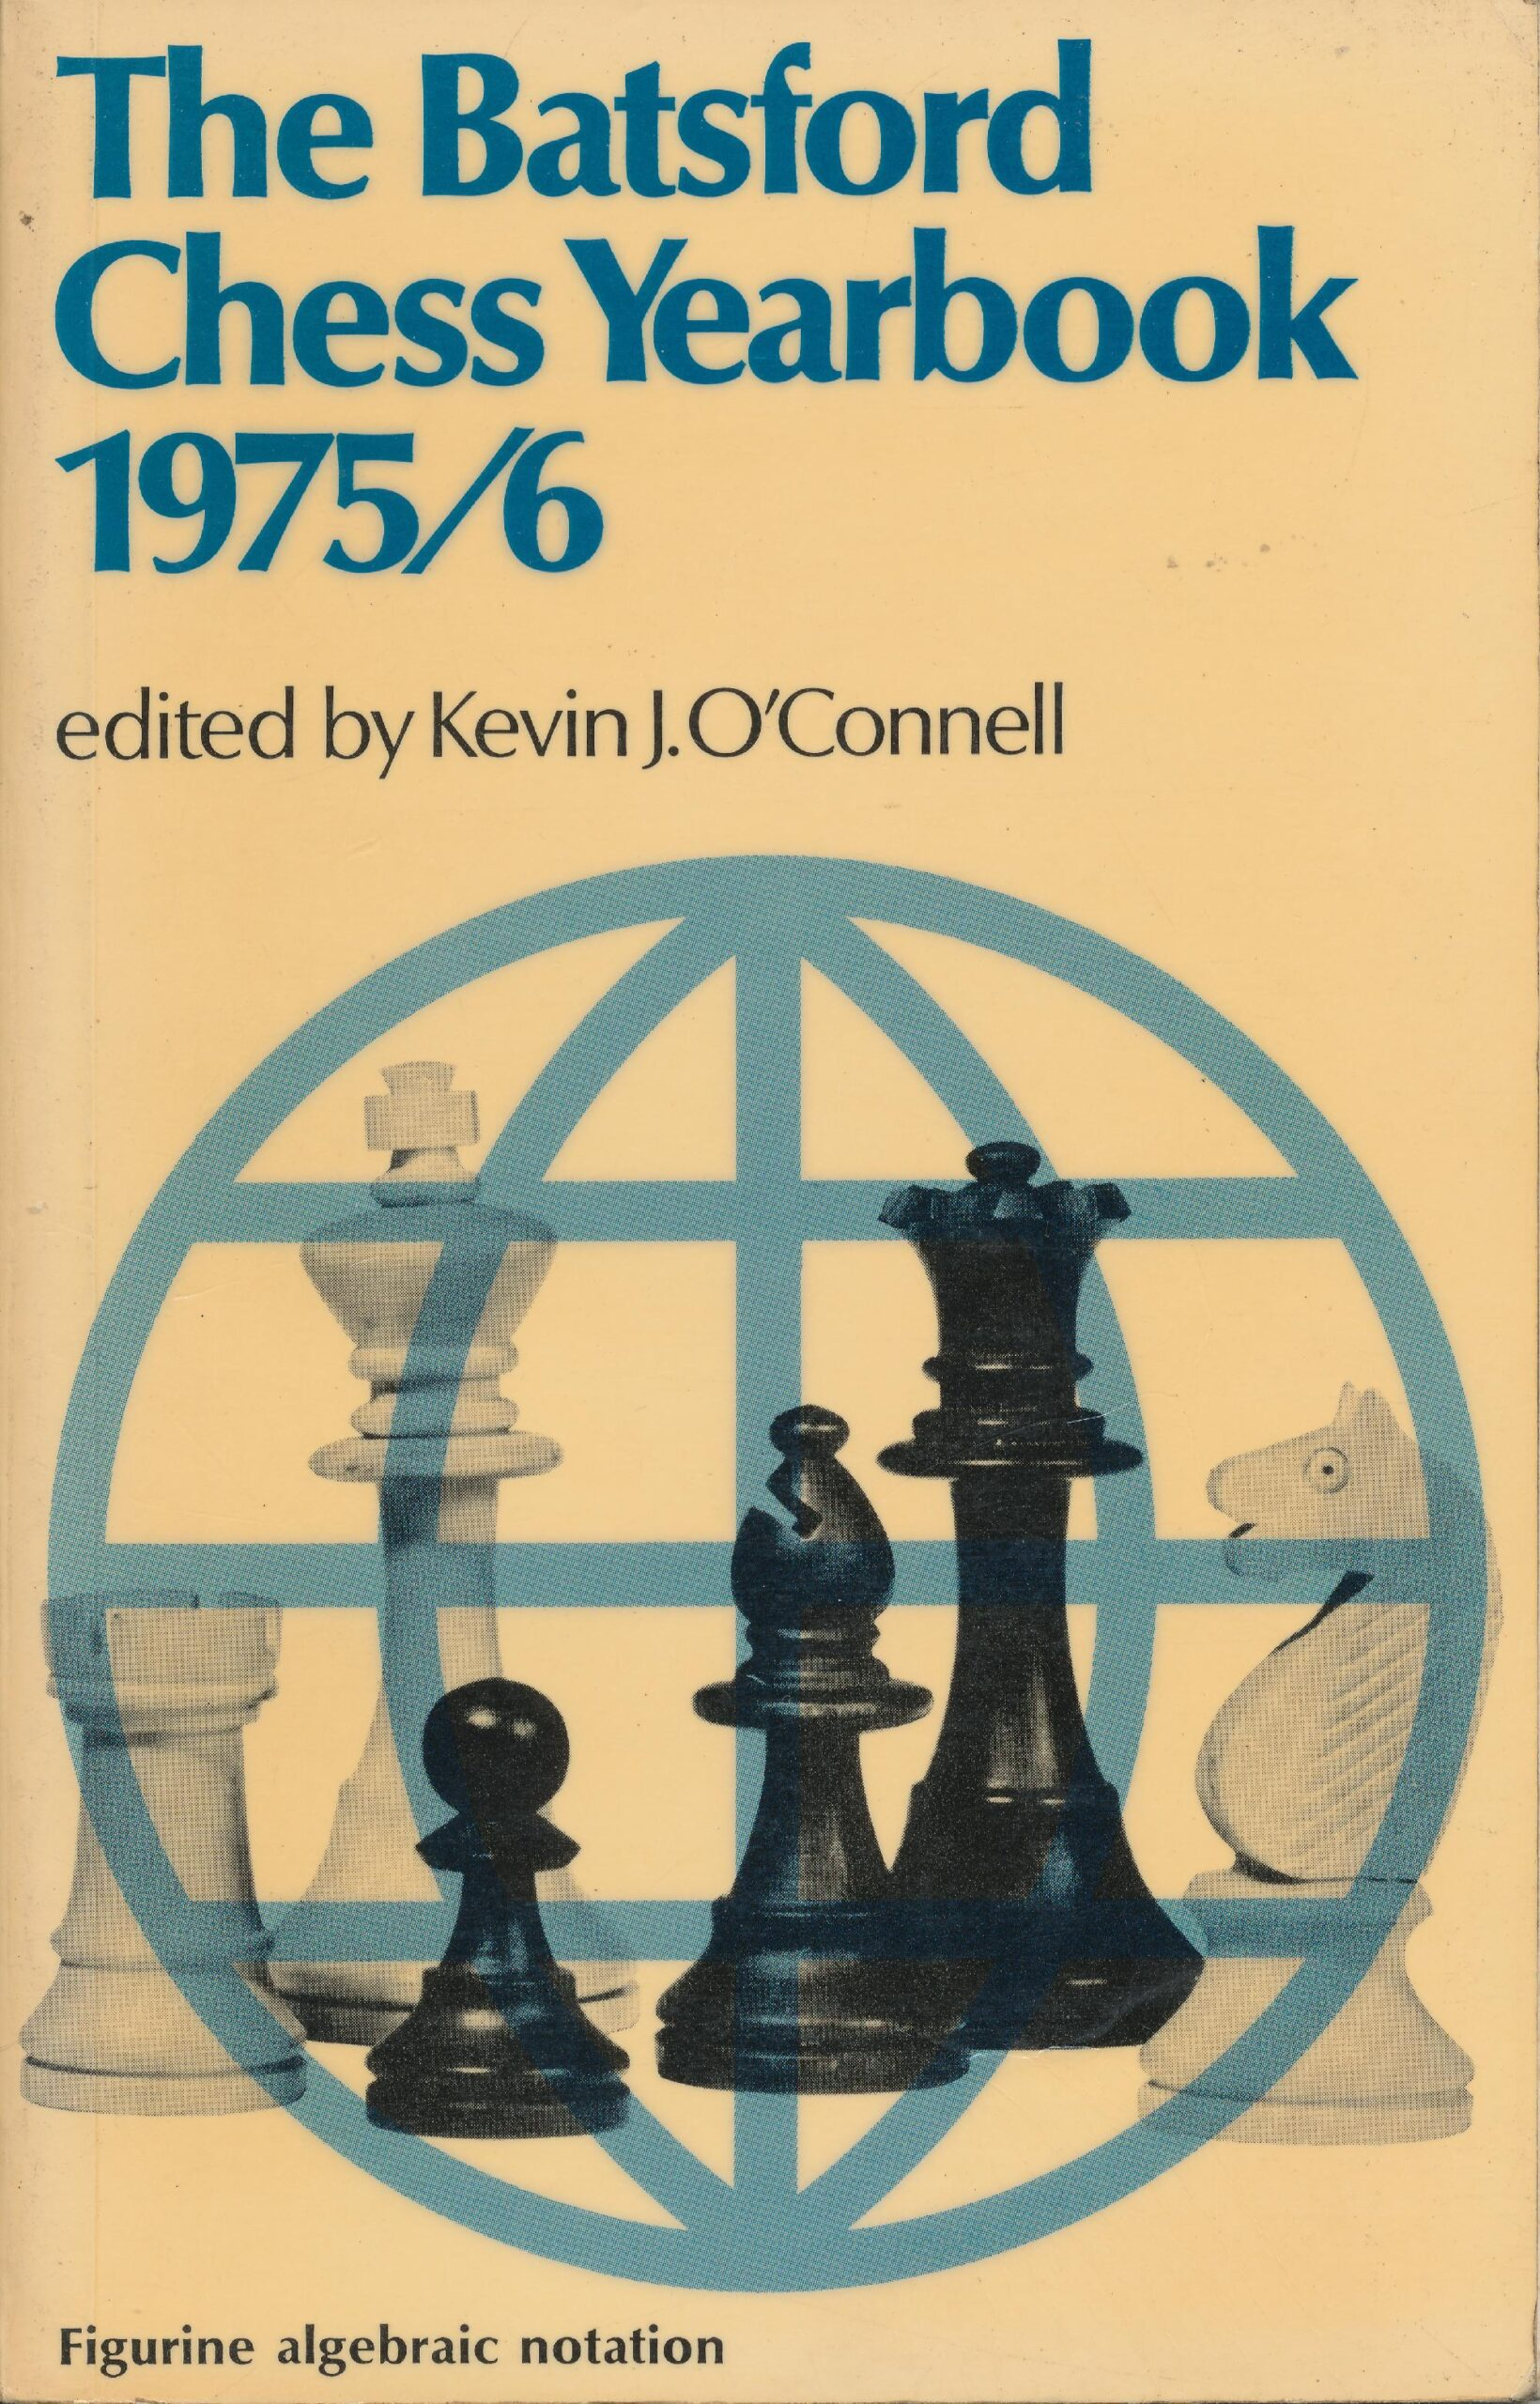 The Batsford Chess Yearbook 1975/6